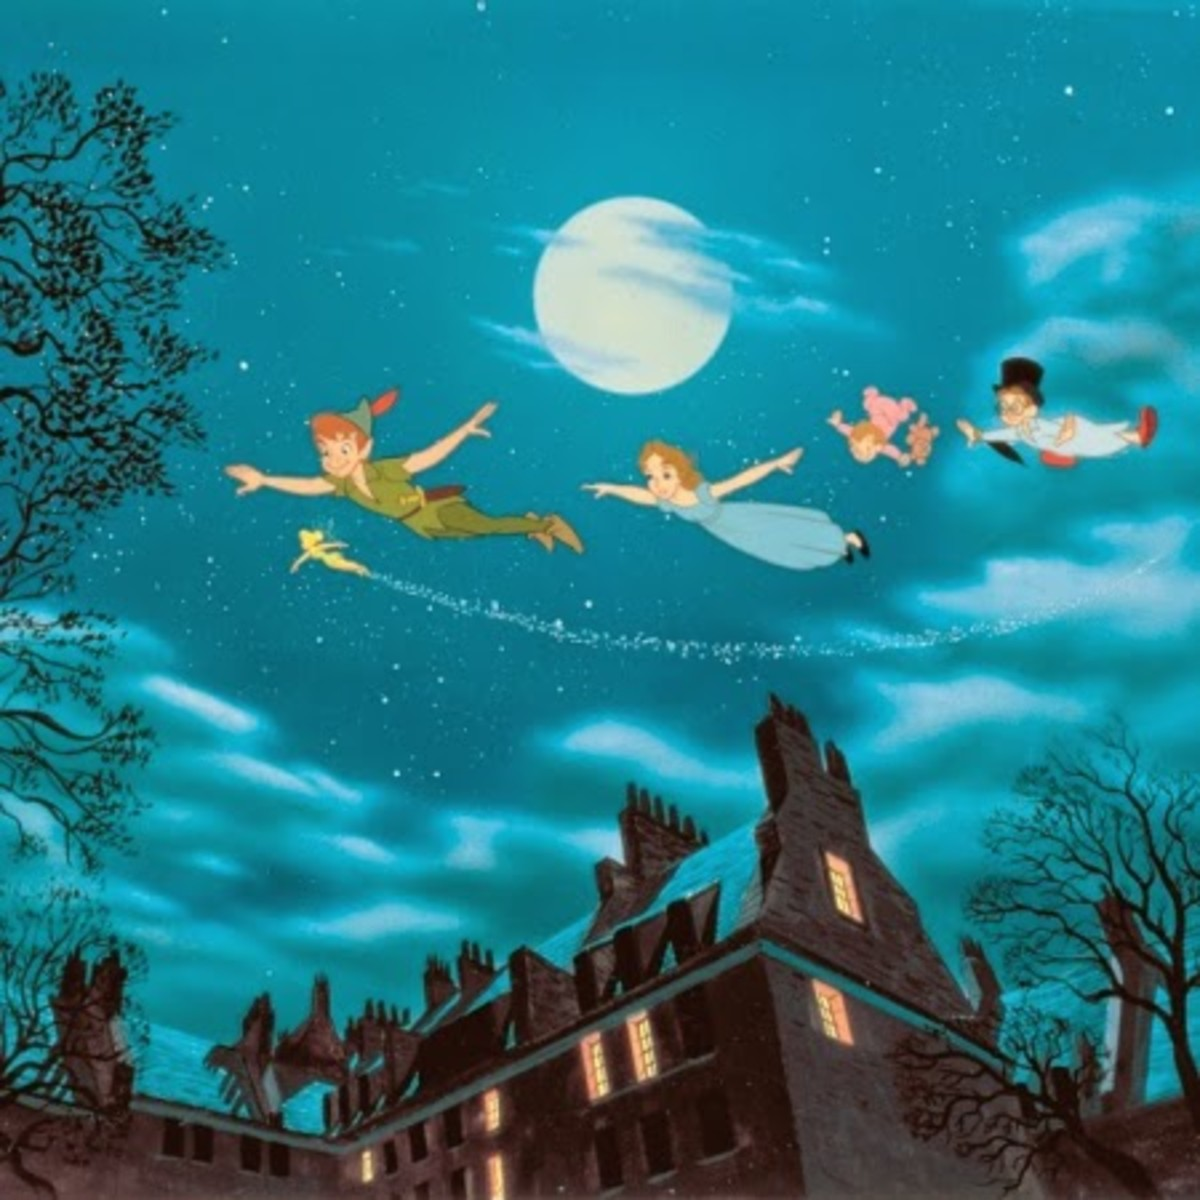 Some of the artwork in the film is truly wonderful such as this shot of Peter leading the children towards Neverland